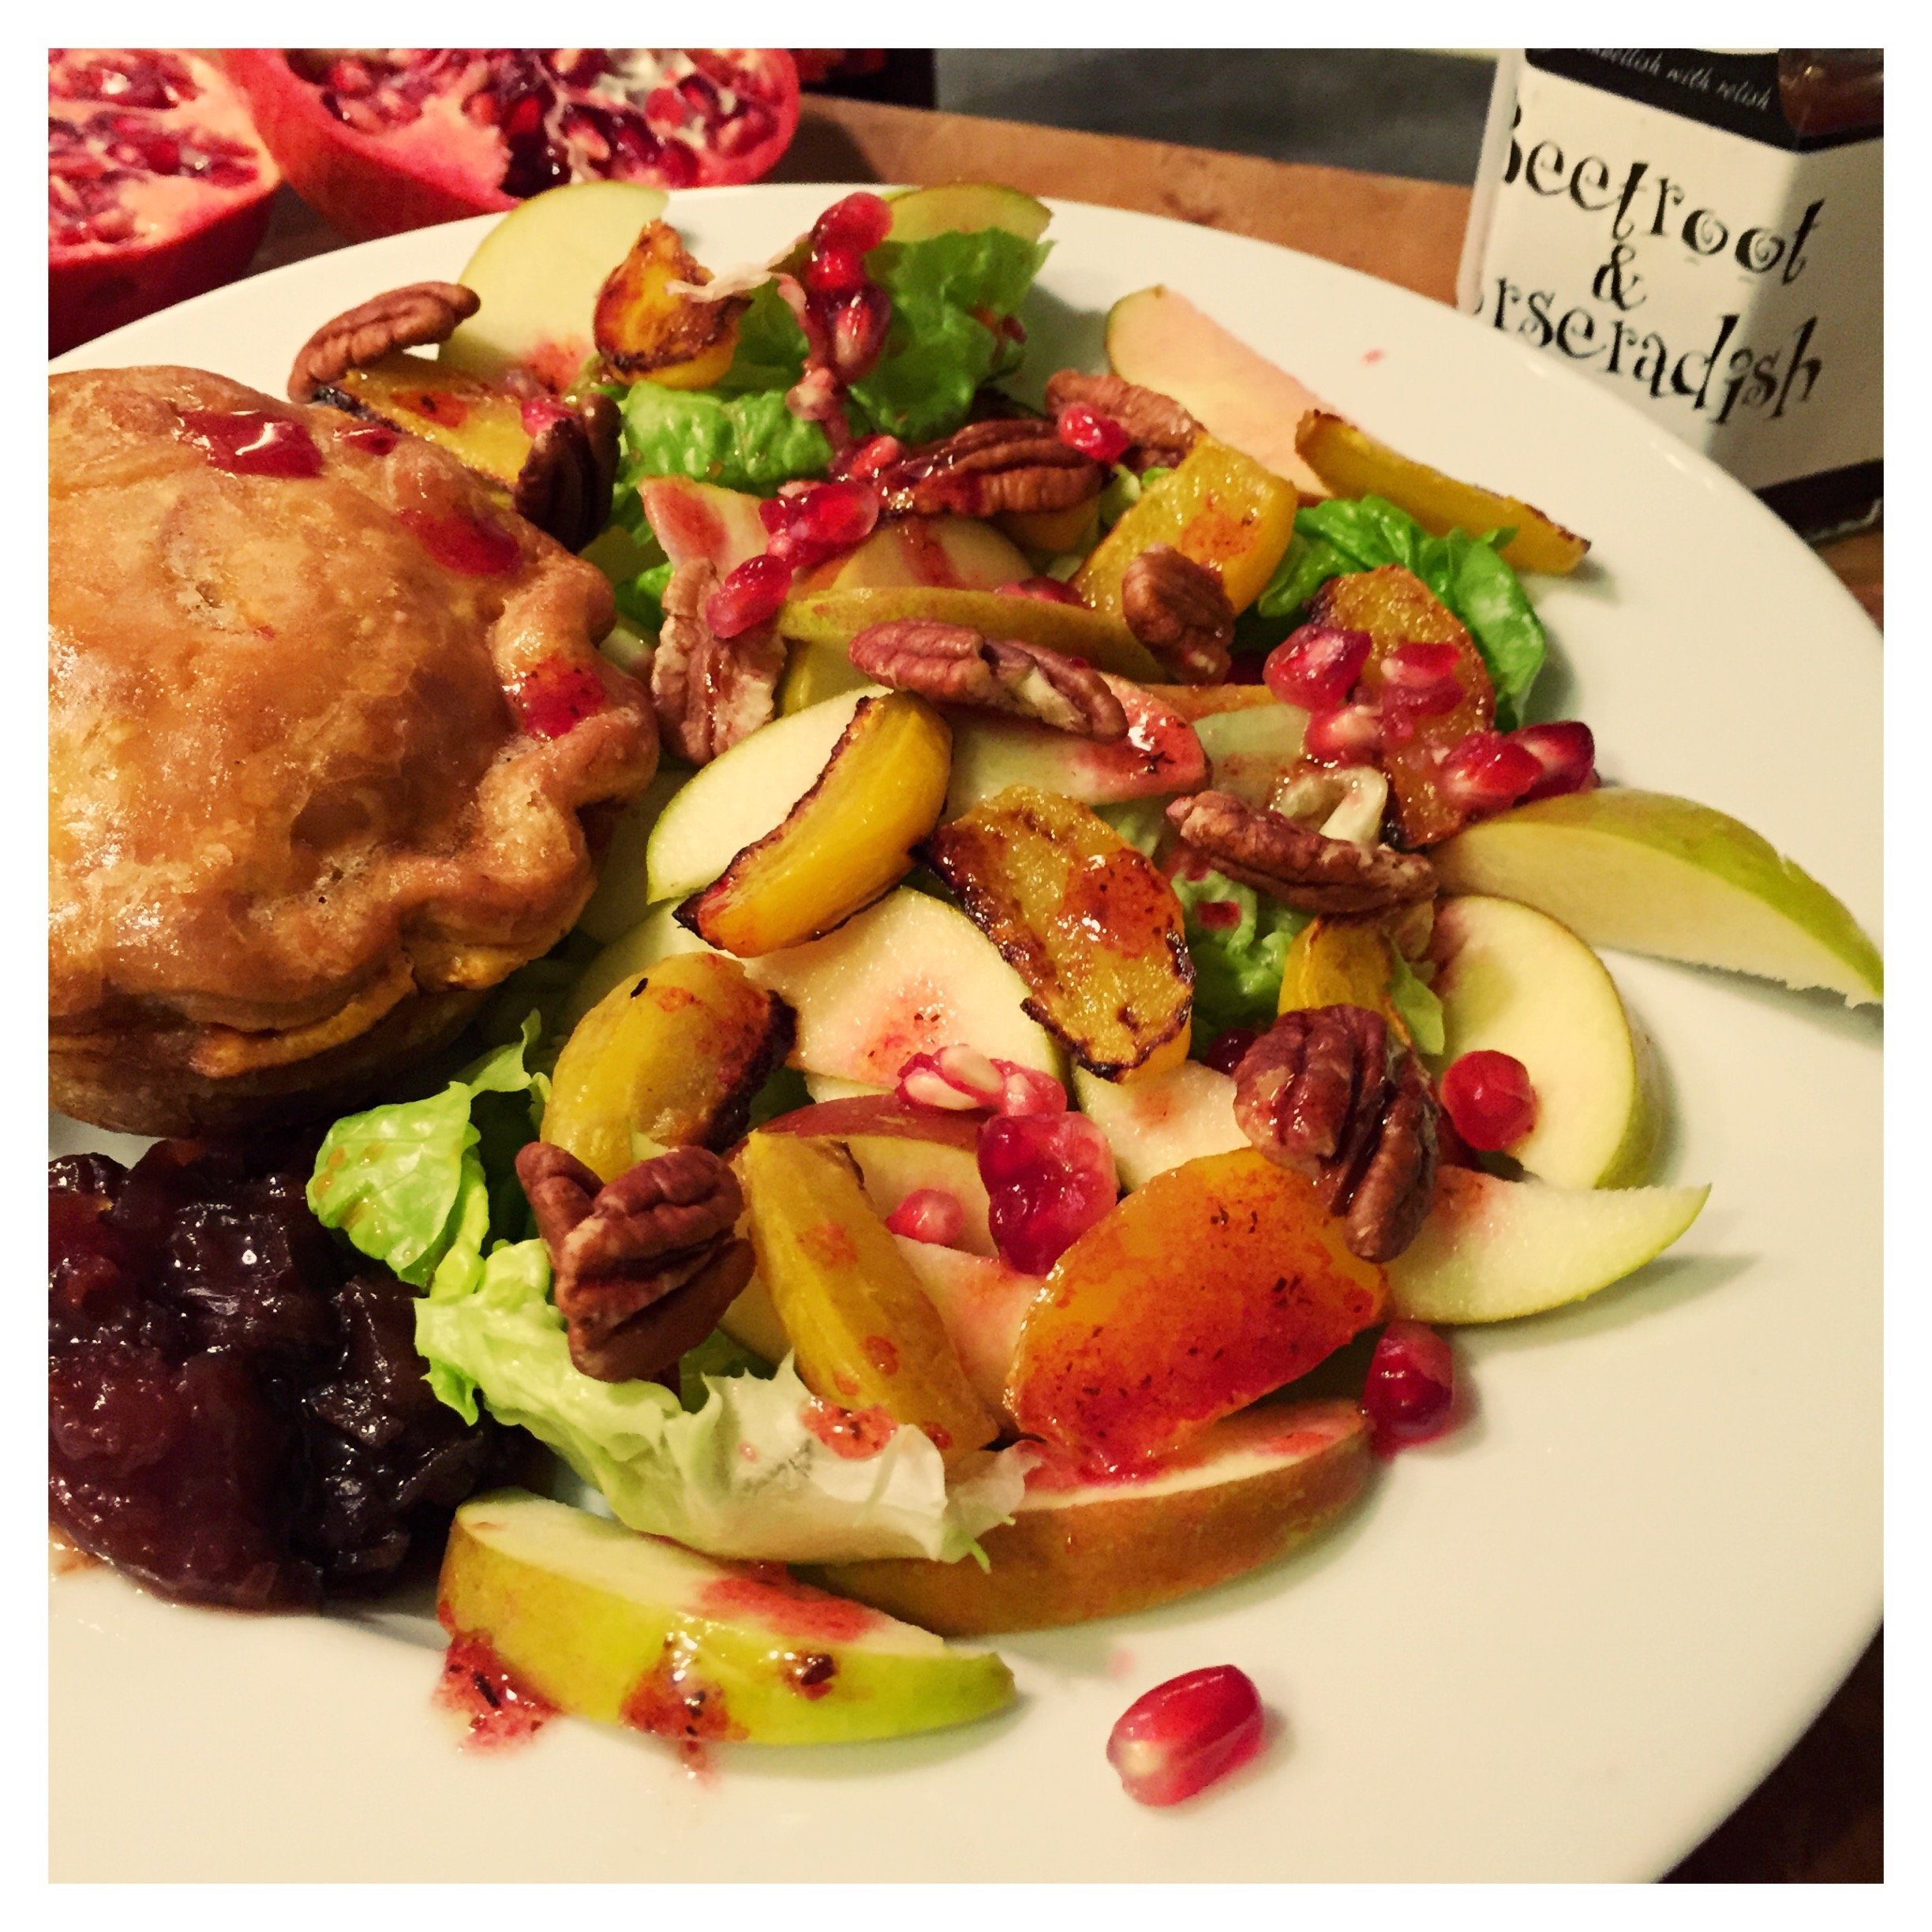 Autumn salad with apples and roast beetroot